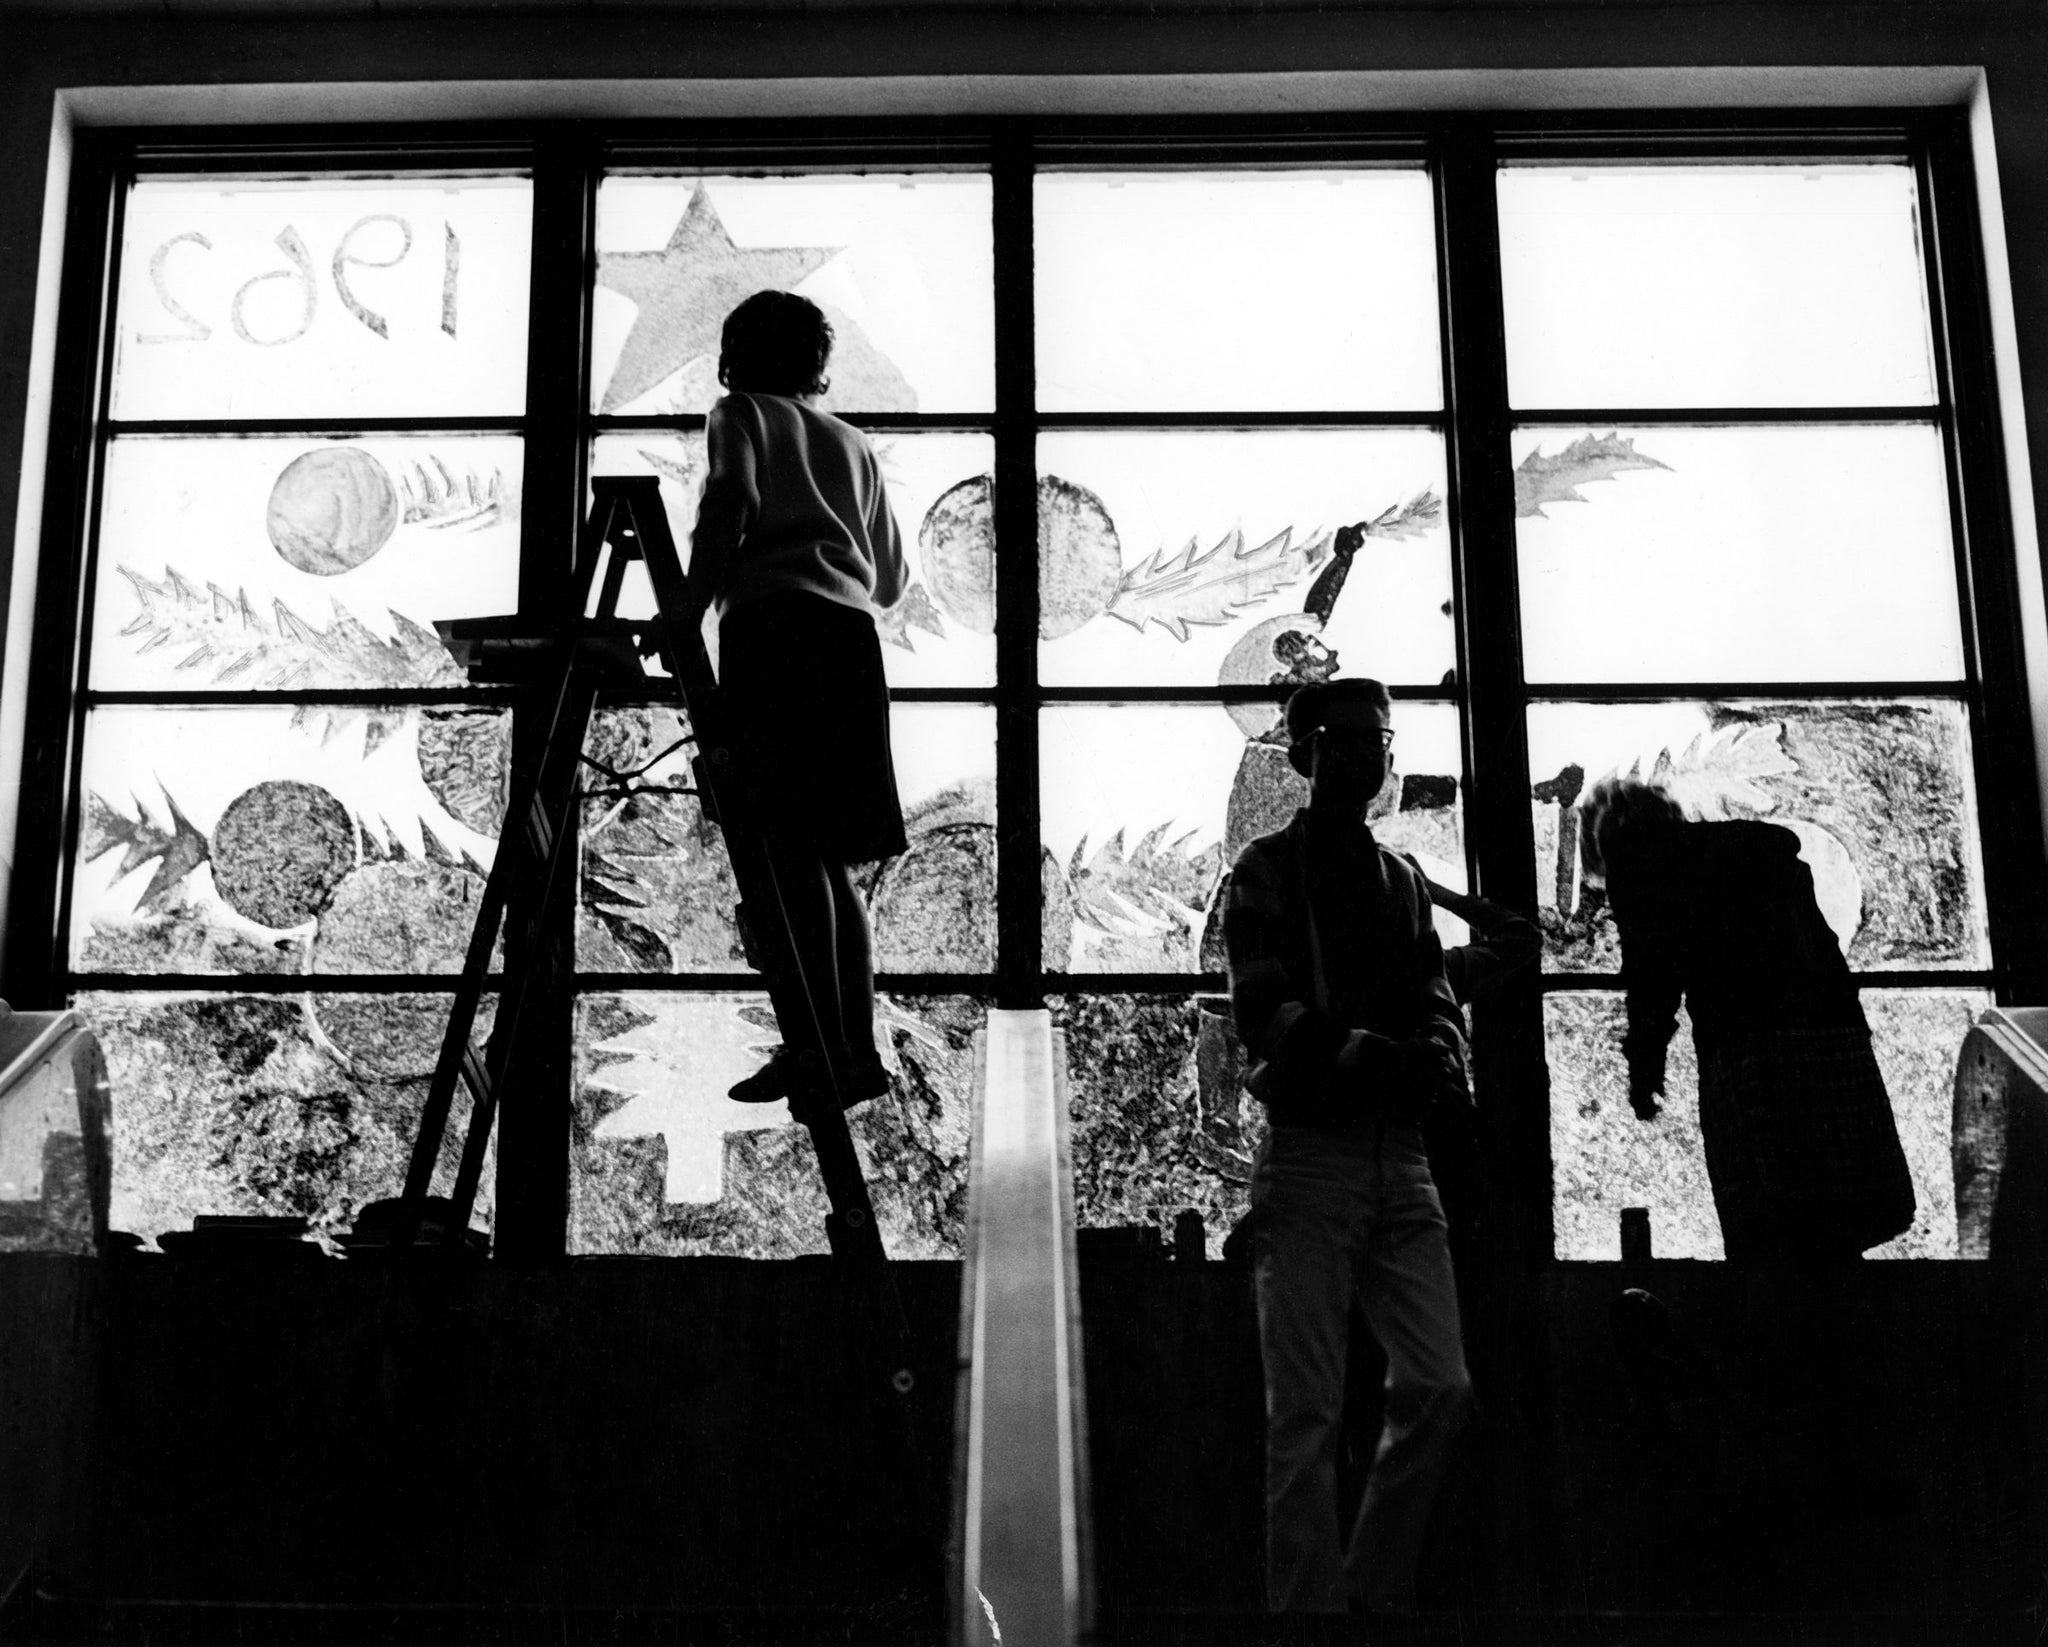 Students at Bismarck High School decorate a classroom window for the Christmas season, December 1962. -- Bismarck Tribune